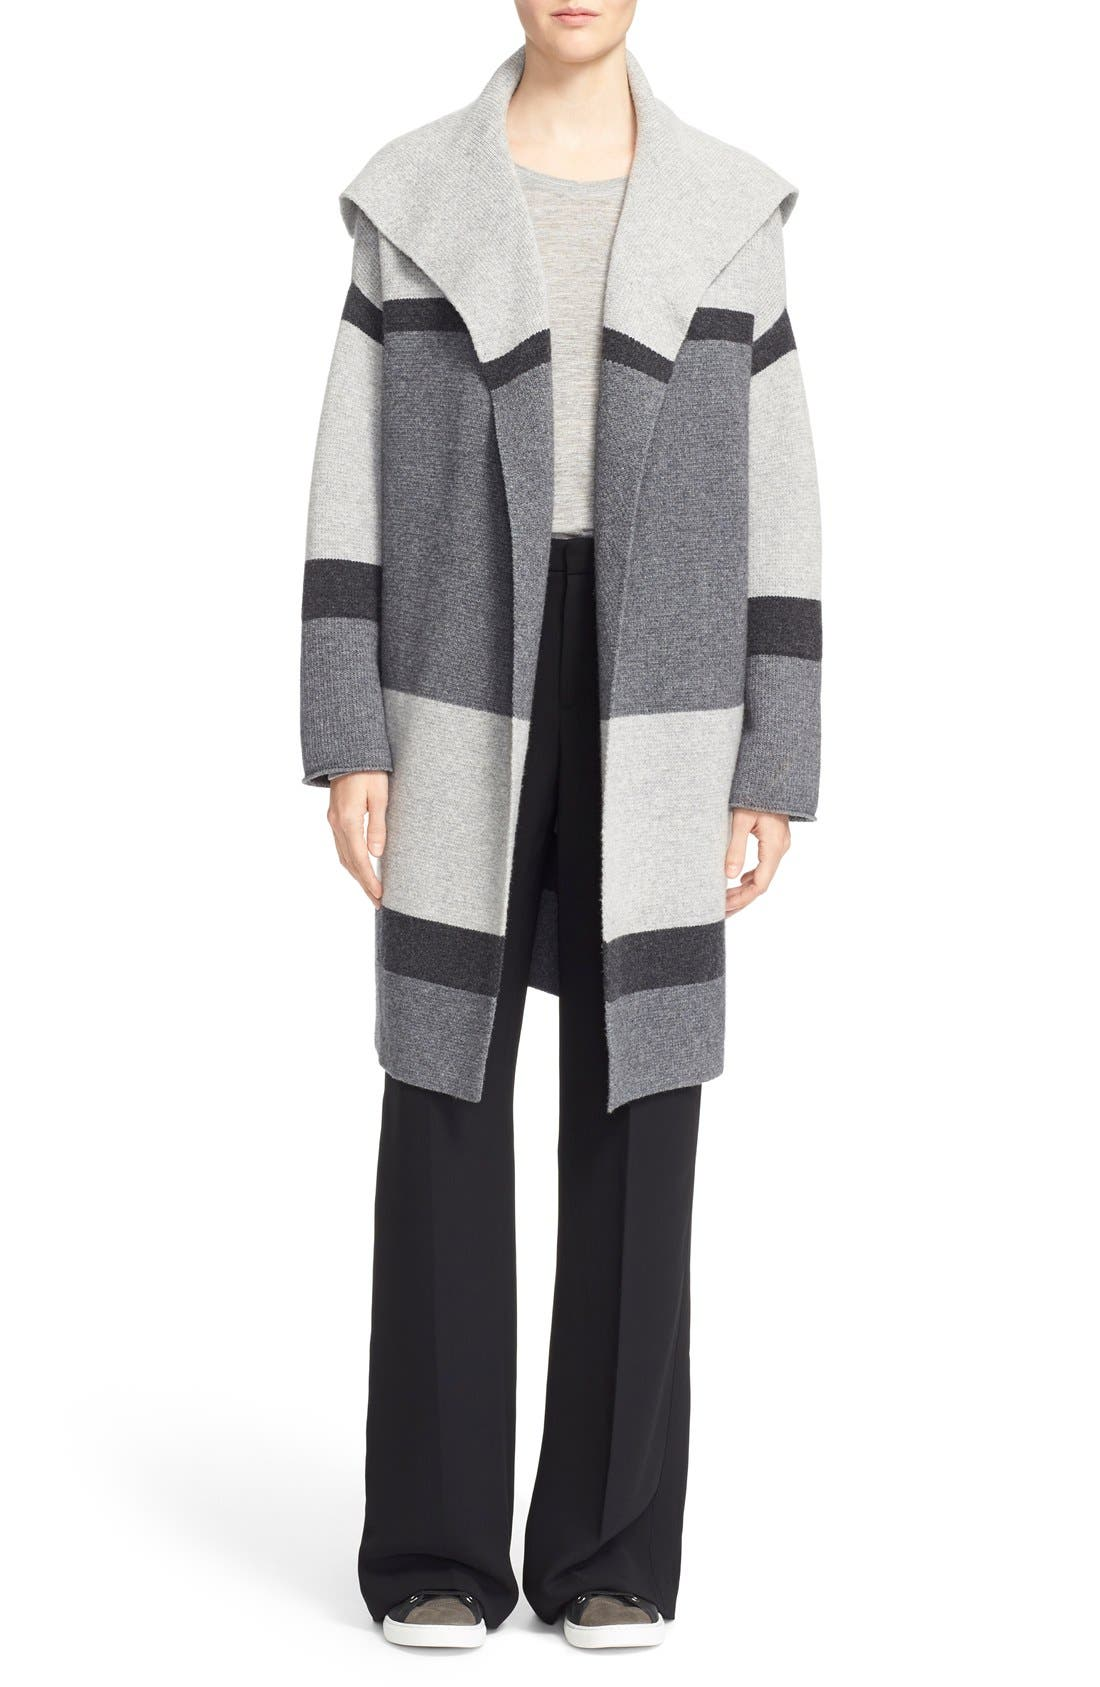 Colorblock Wool & Cashmere Knit Car Coat,                             Alternate thumbnail 2, color,                             Heather Steal/ Stone/ Carbon